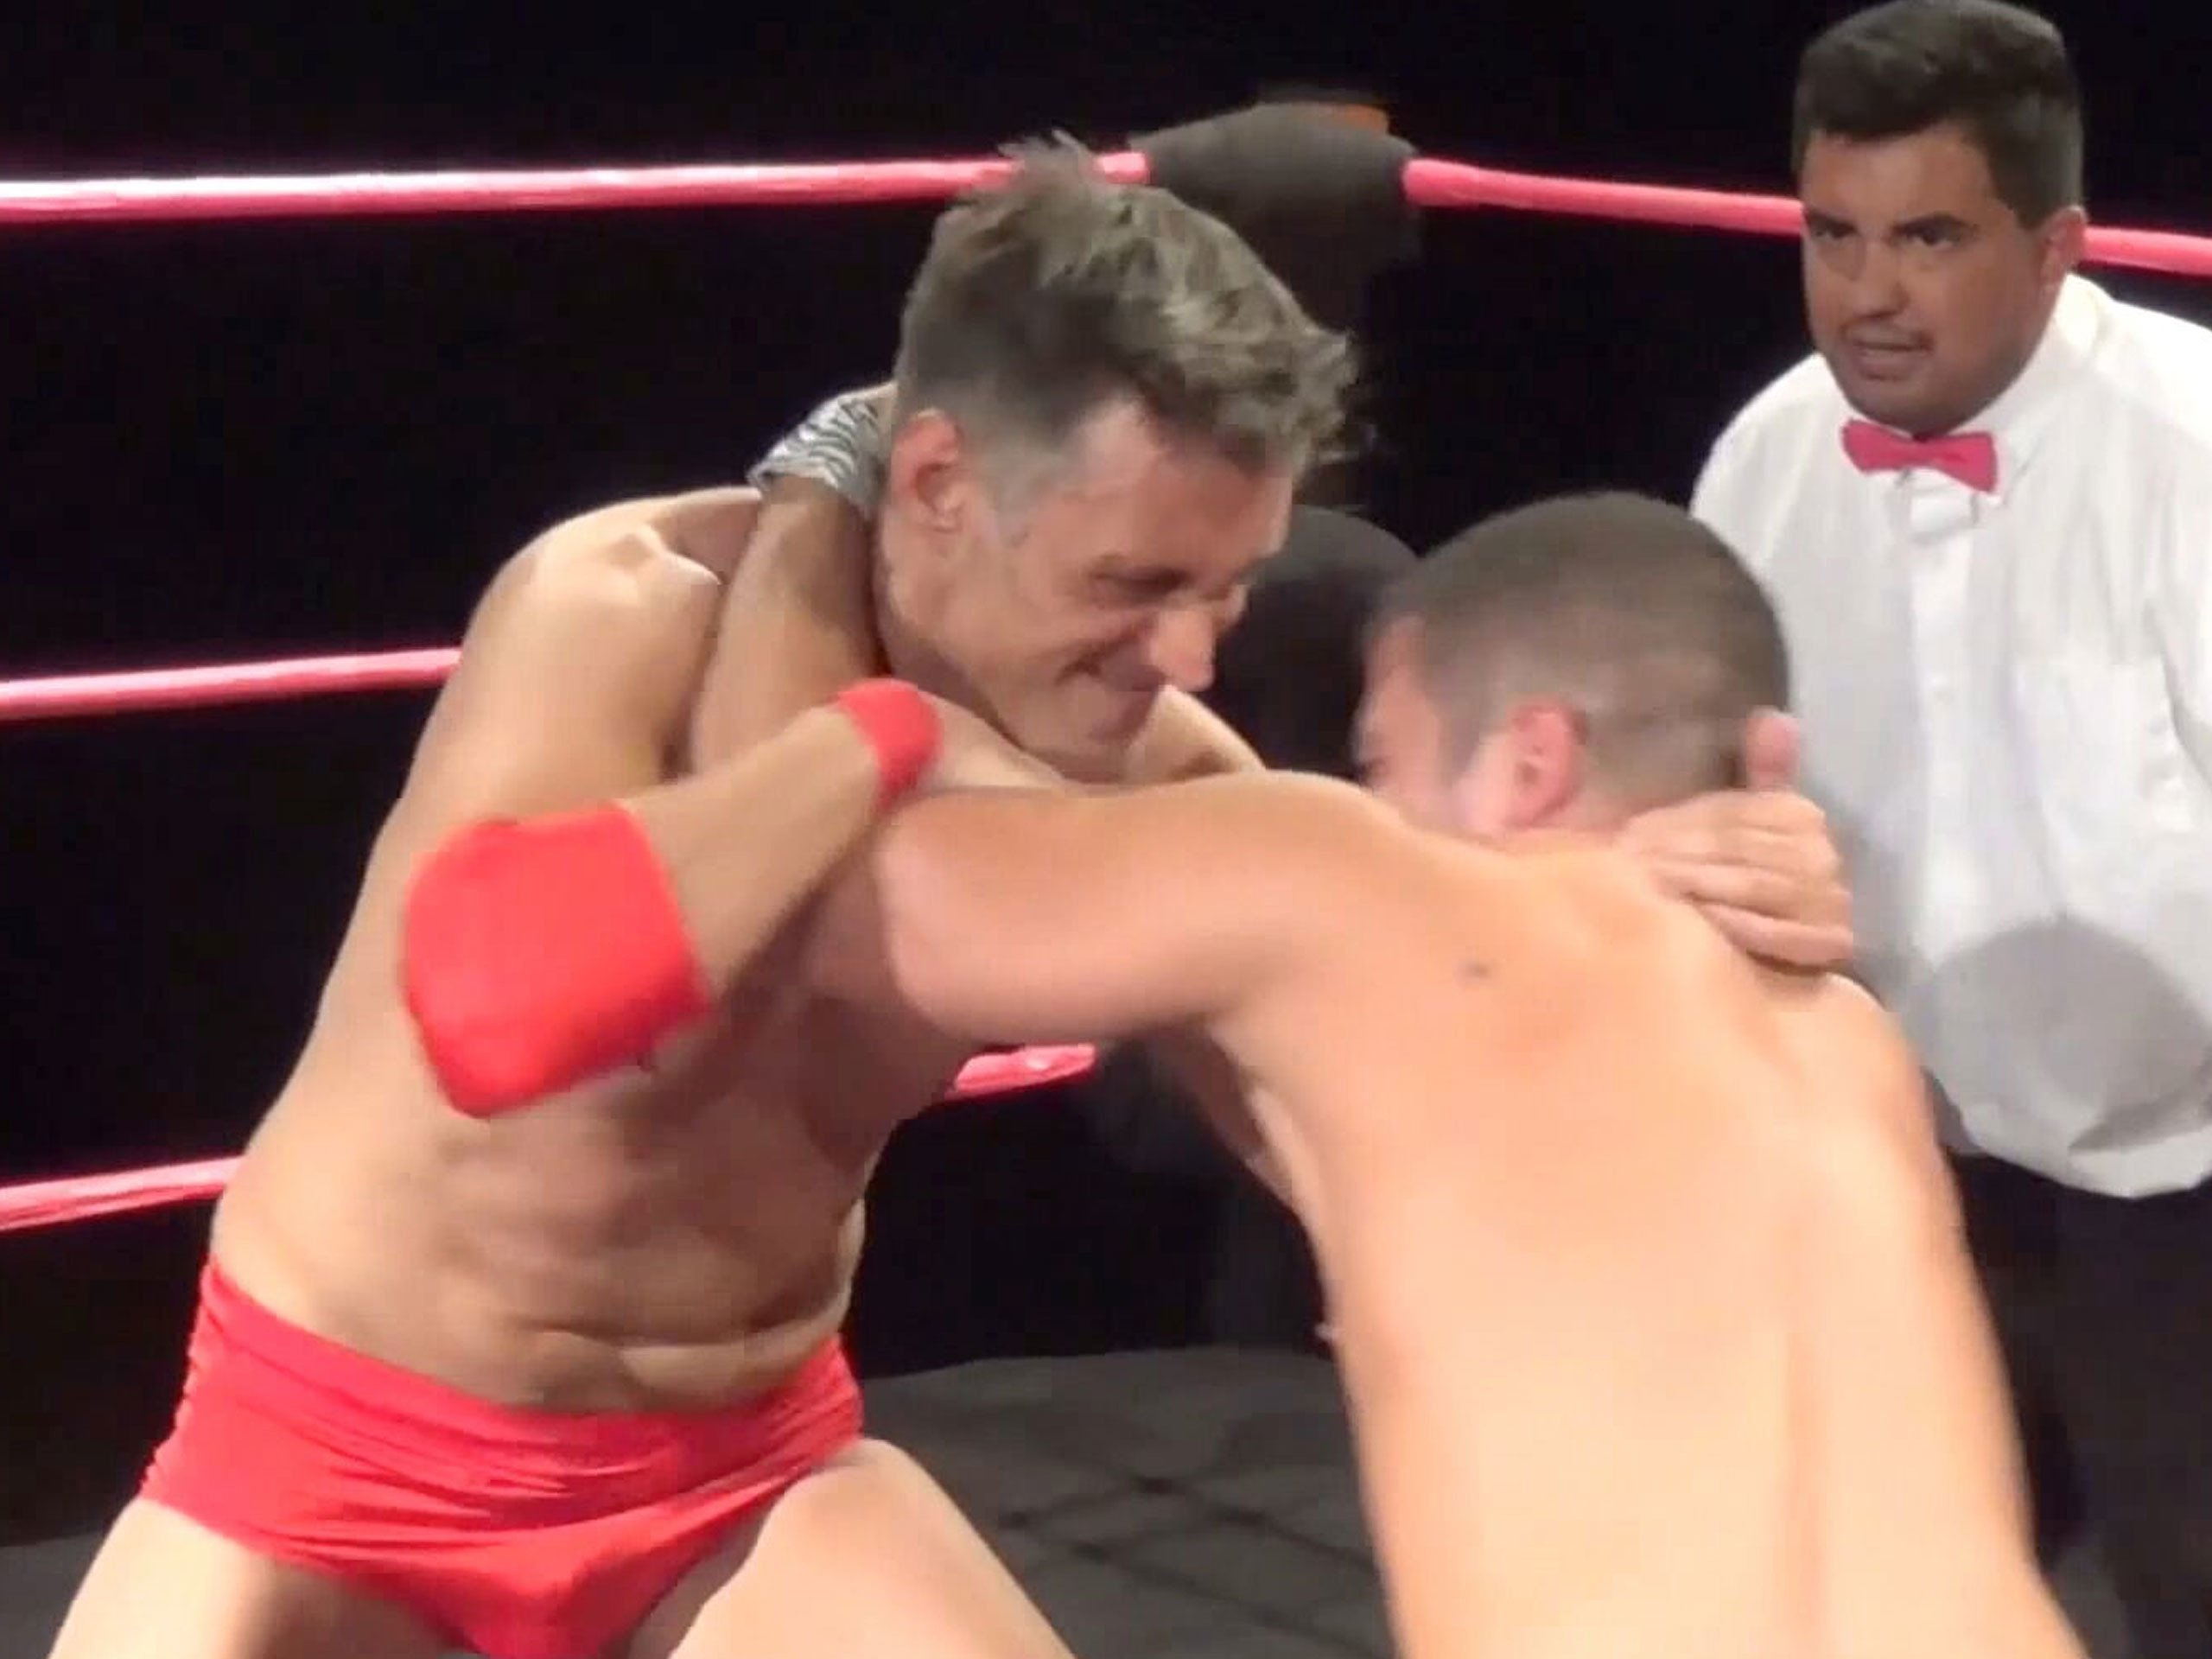 The gay man wrestling and Wrestling Videos: